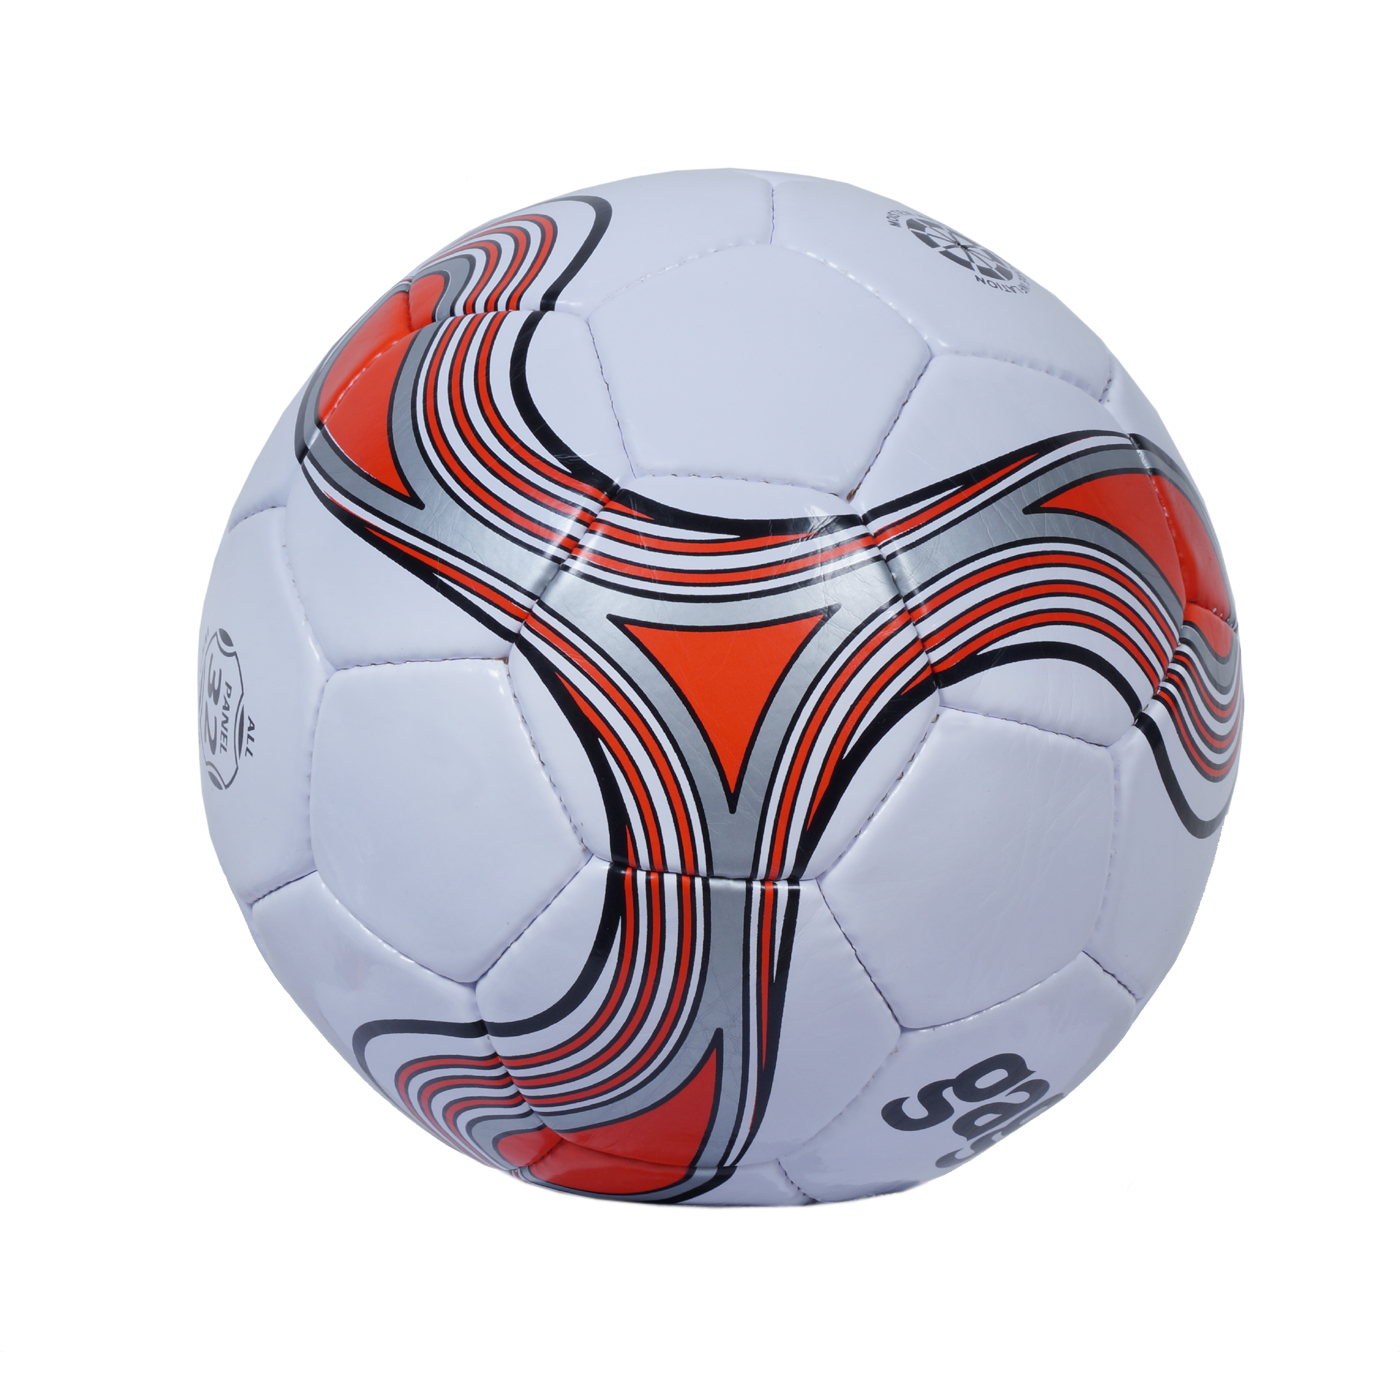 Size 3 Futsal Ball Manufacturers, Wholesale Suppliers